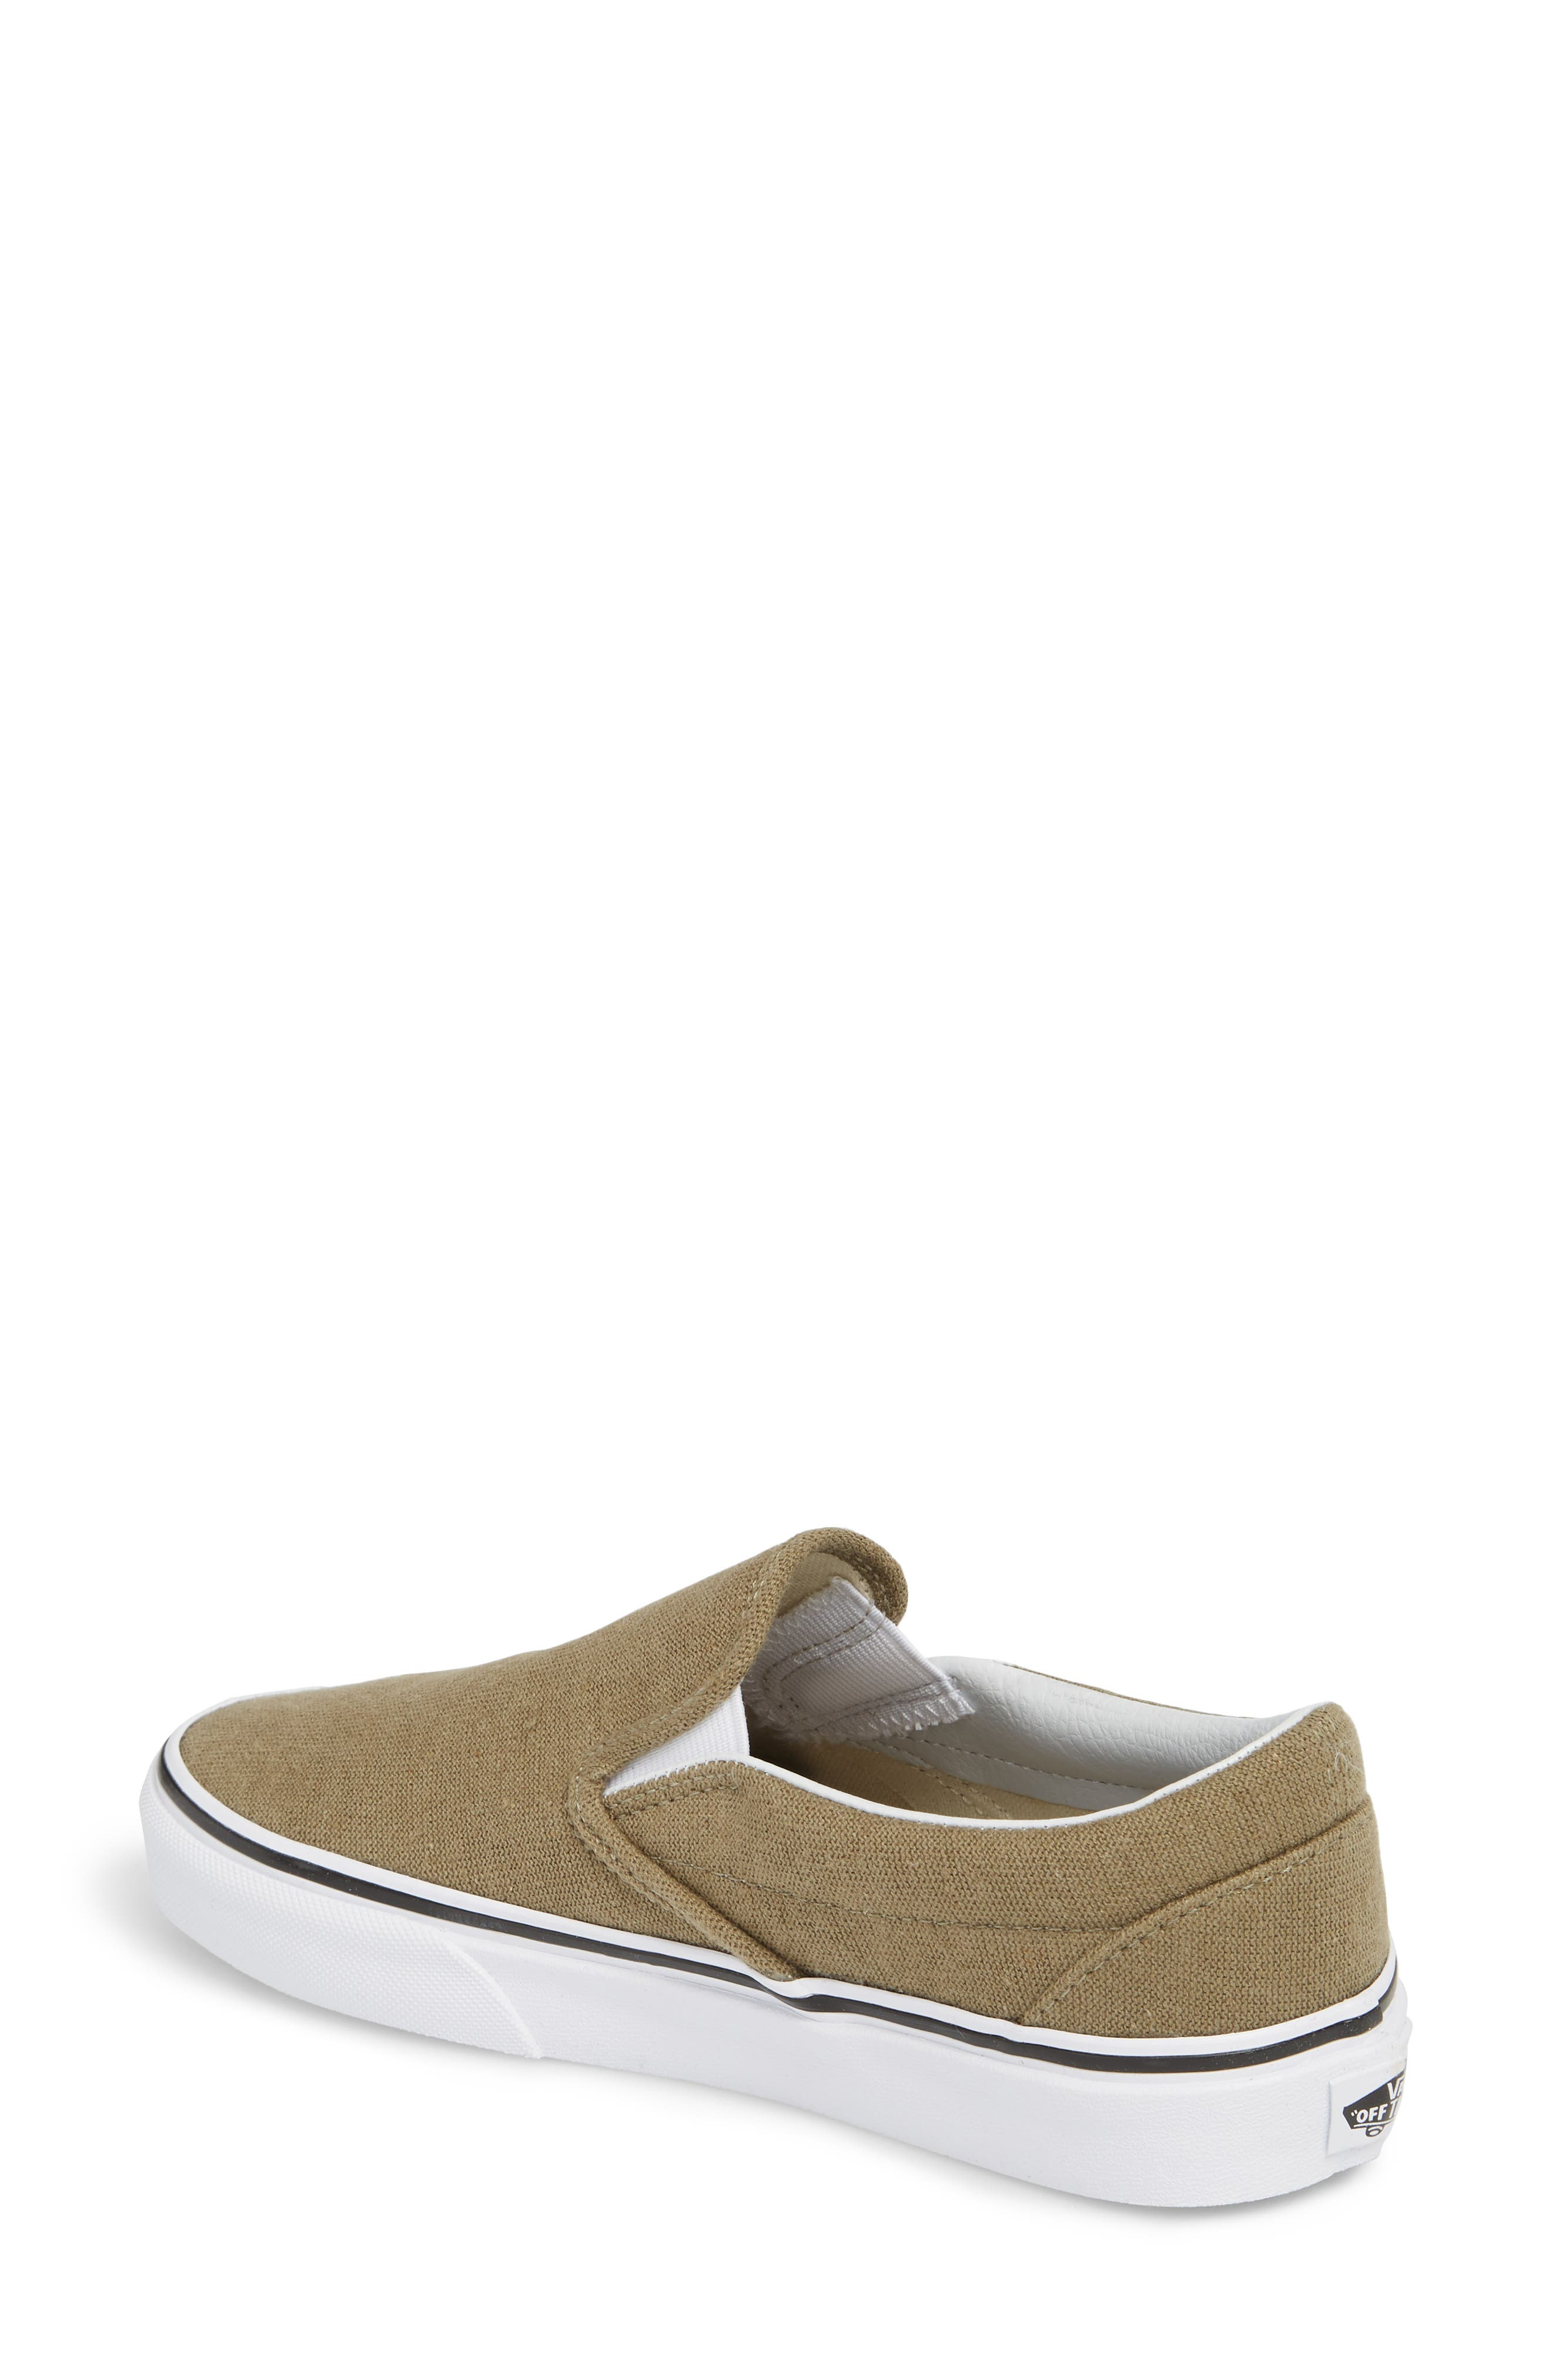 Classic Slip-On Sneaker,                             Alternate thumbnail 110, color,